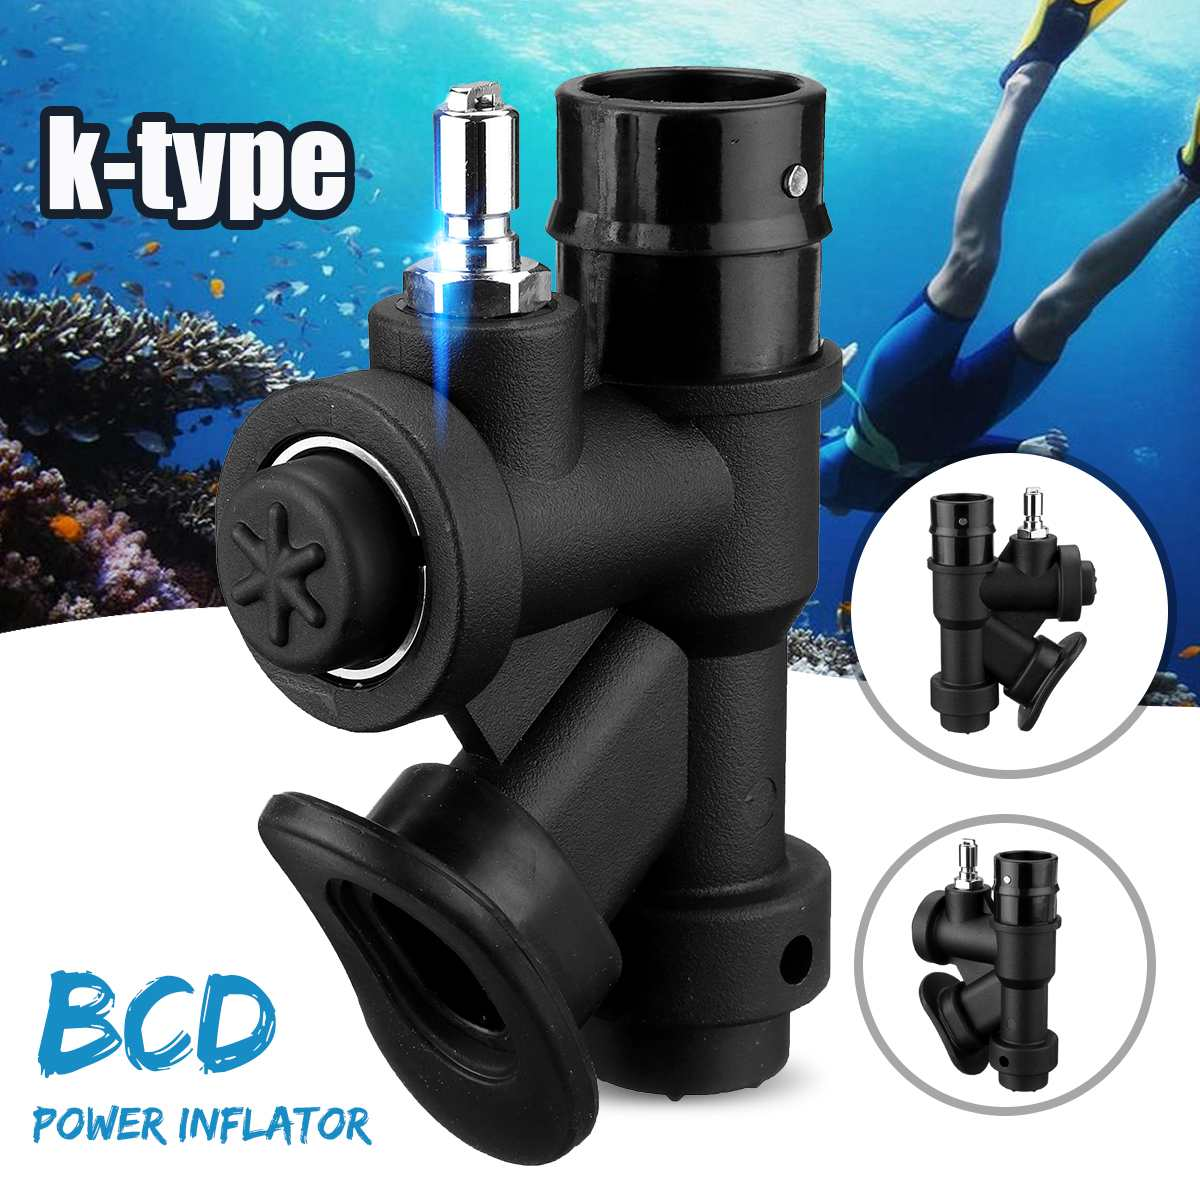 Diving Scuba Diving Universal BCD Power Inflator K-type Valve Snorkeling For Underwater Breathing Device Accessories